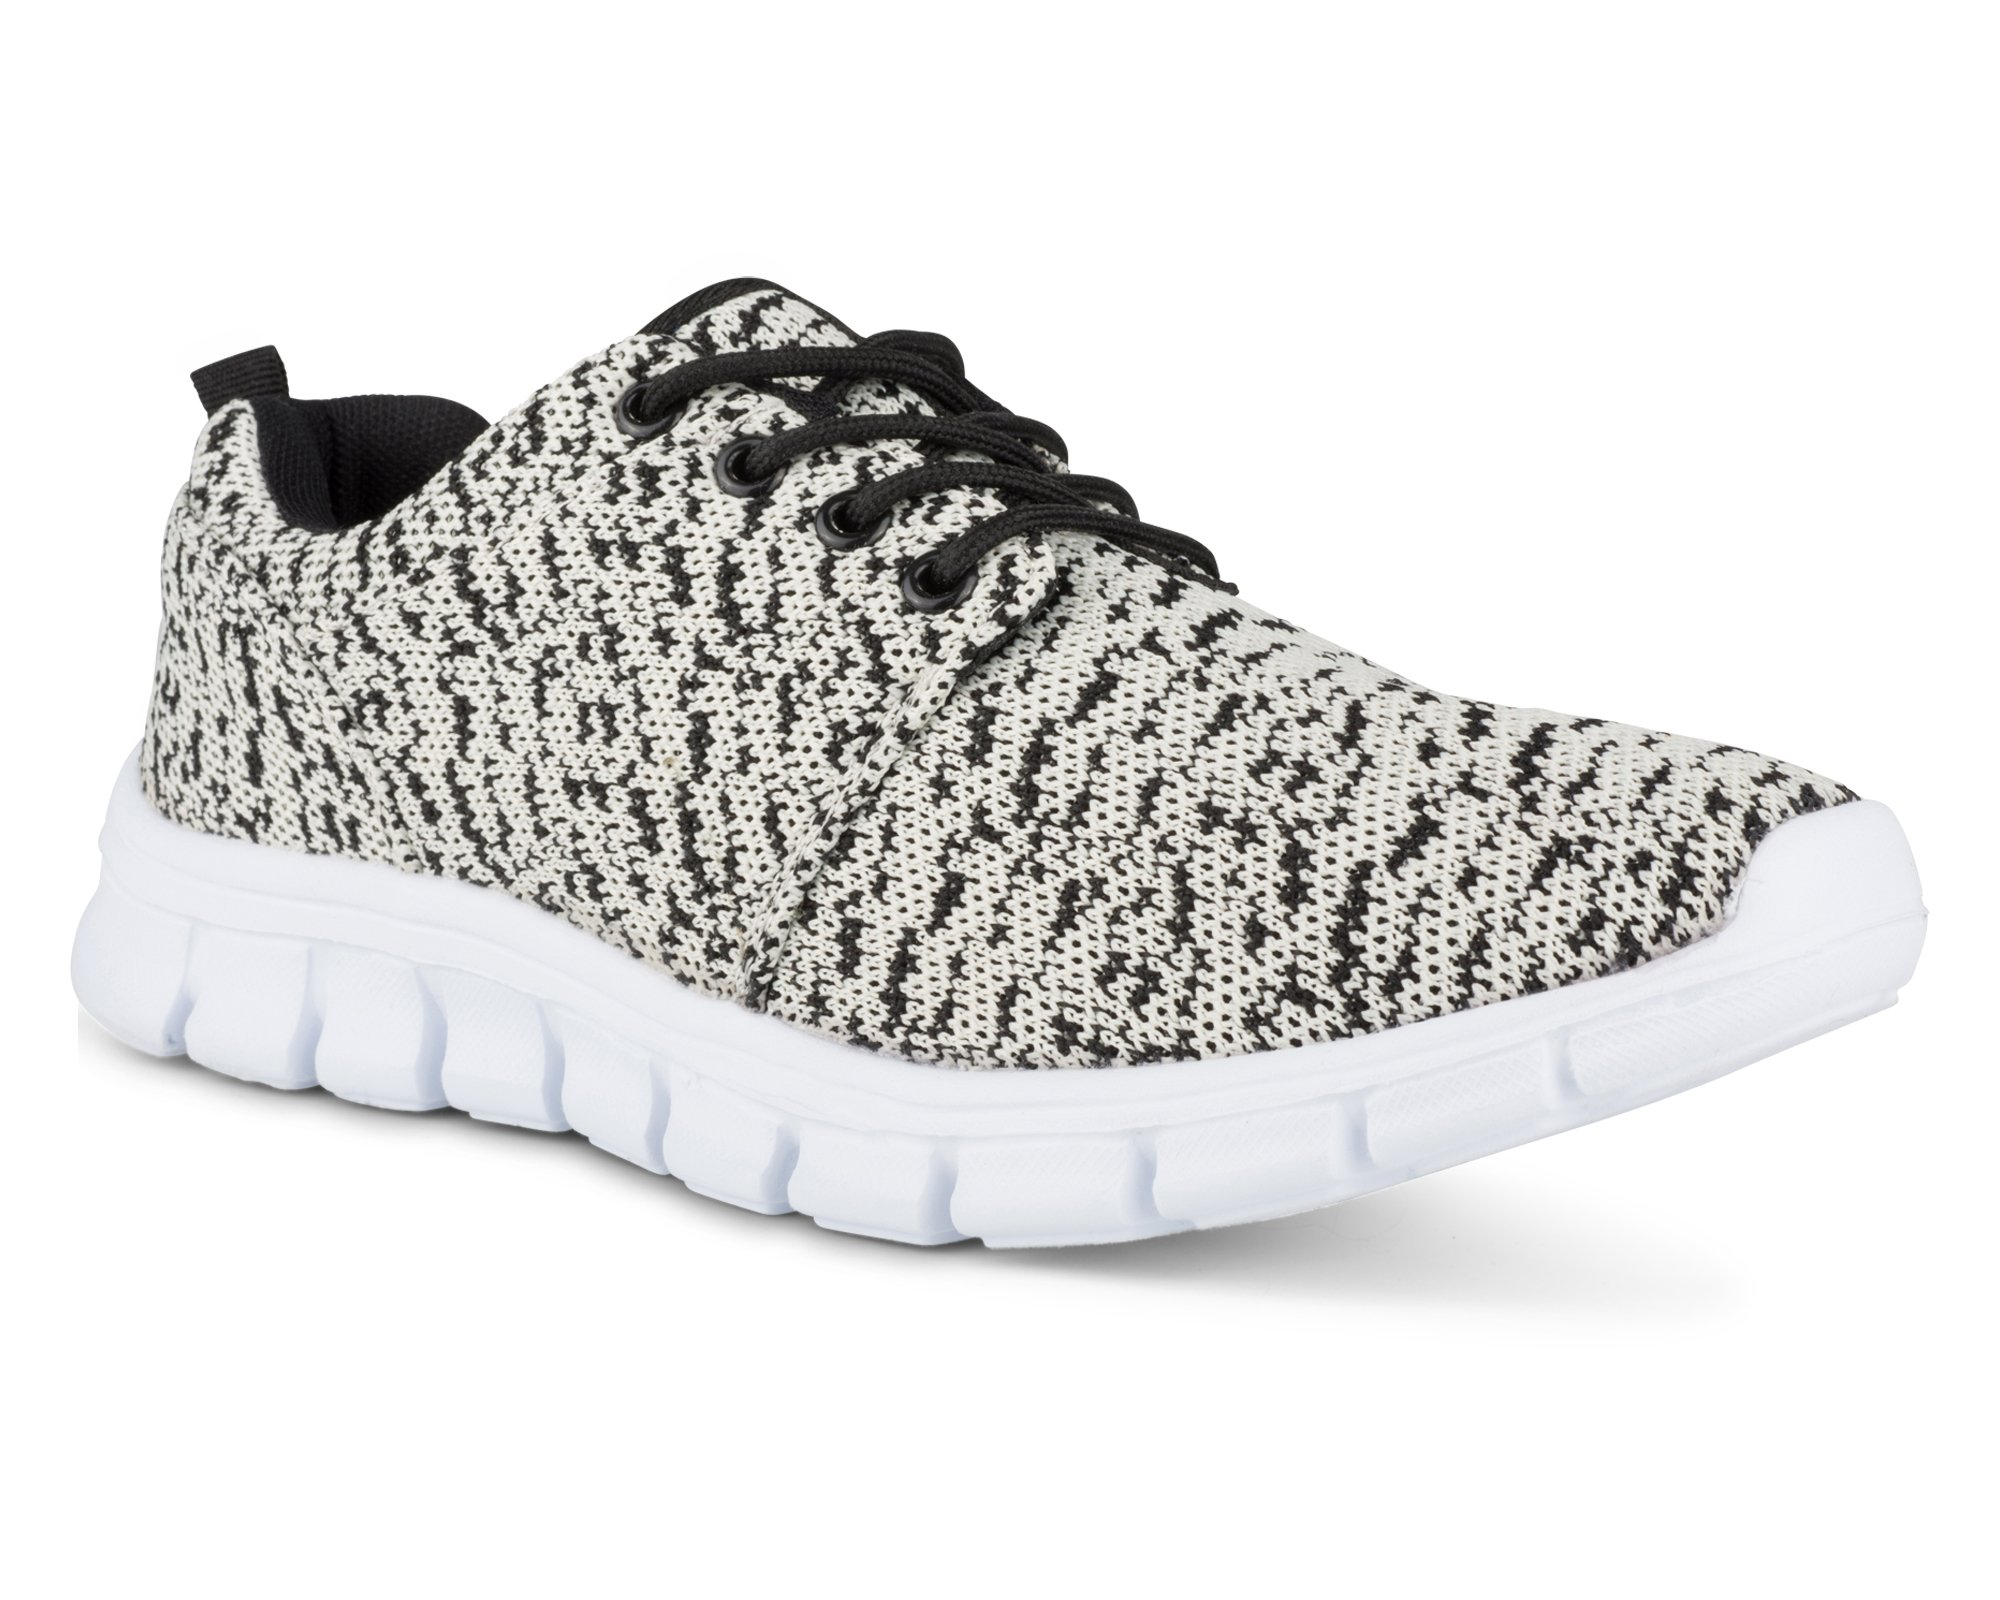 Twisted Womens Reese Athletic Knit Fashion Running Sneaker - Cream/Black, Size 8